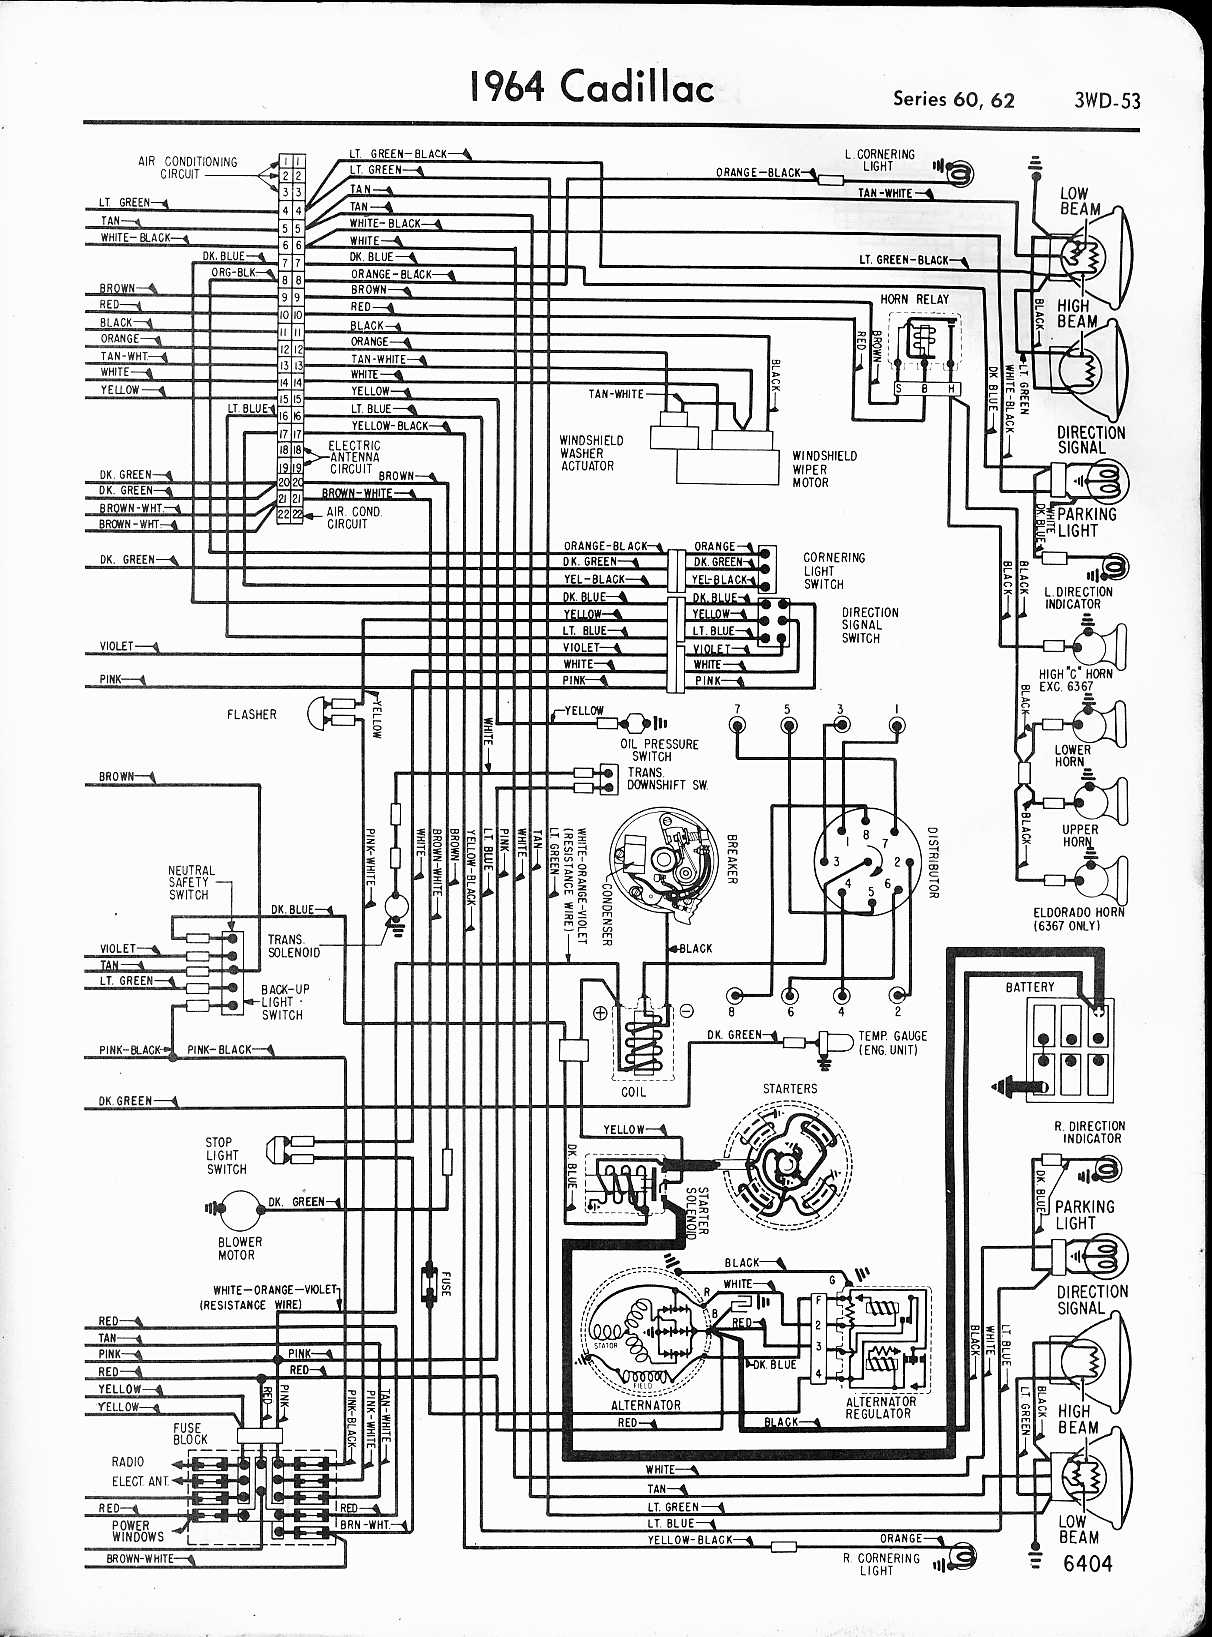 Cadillac Schematics Wiring Diagram Libraries Windows Of 195758 General Motors All Models Diagrams 1957 1965cadillac 4